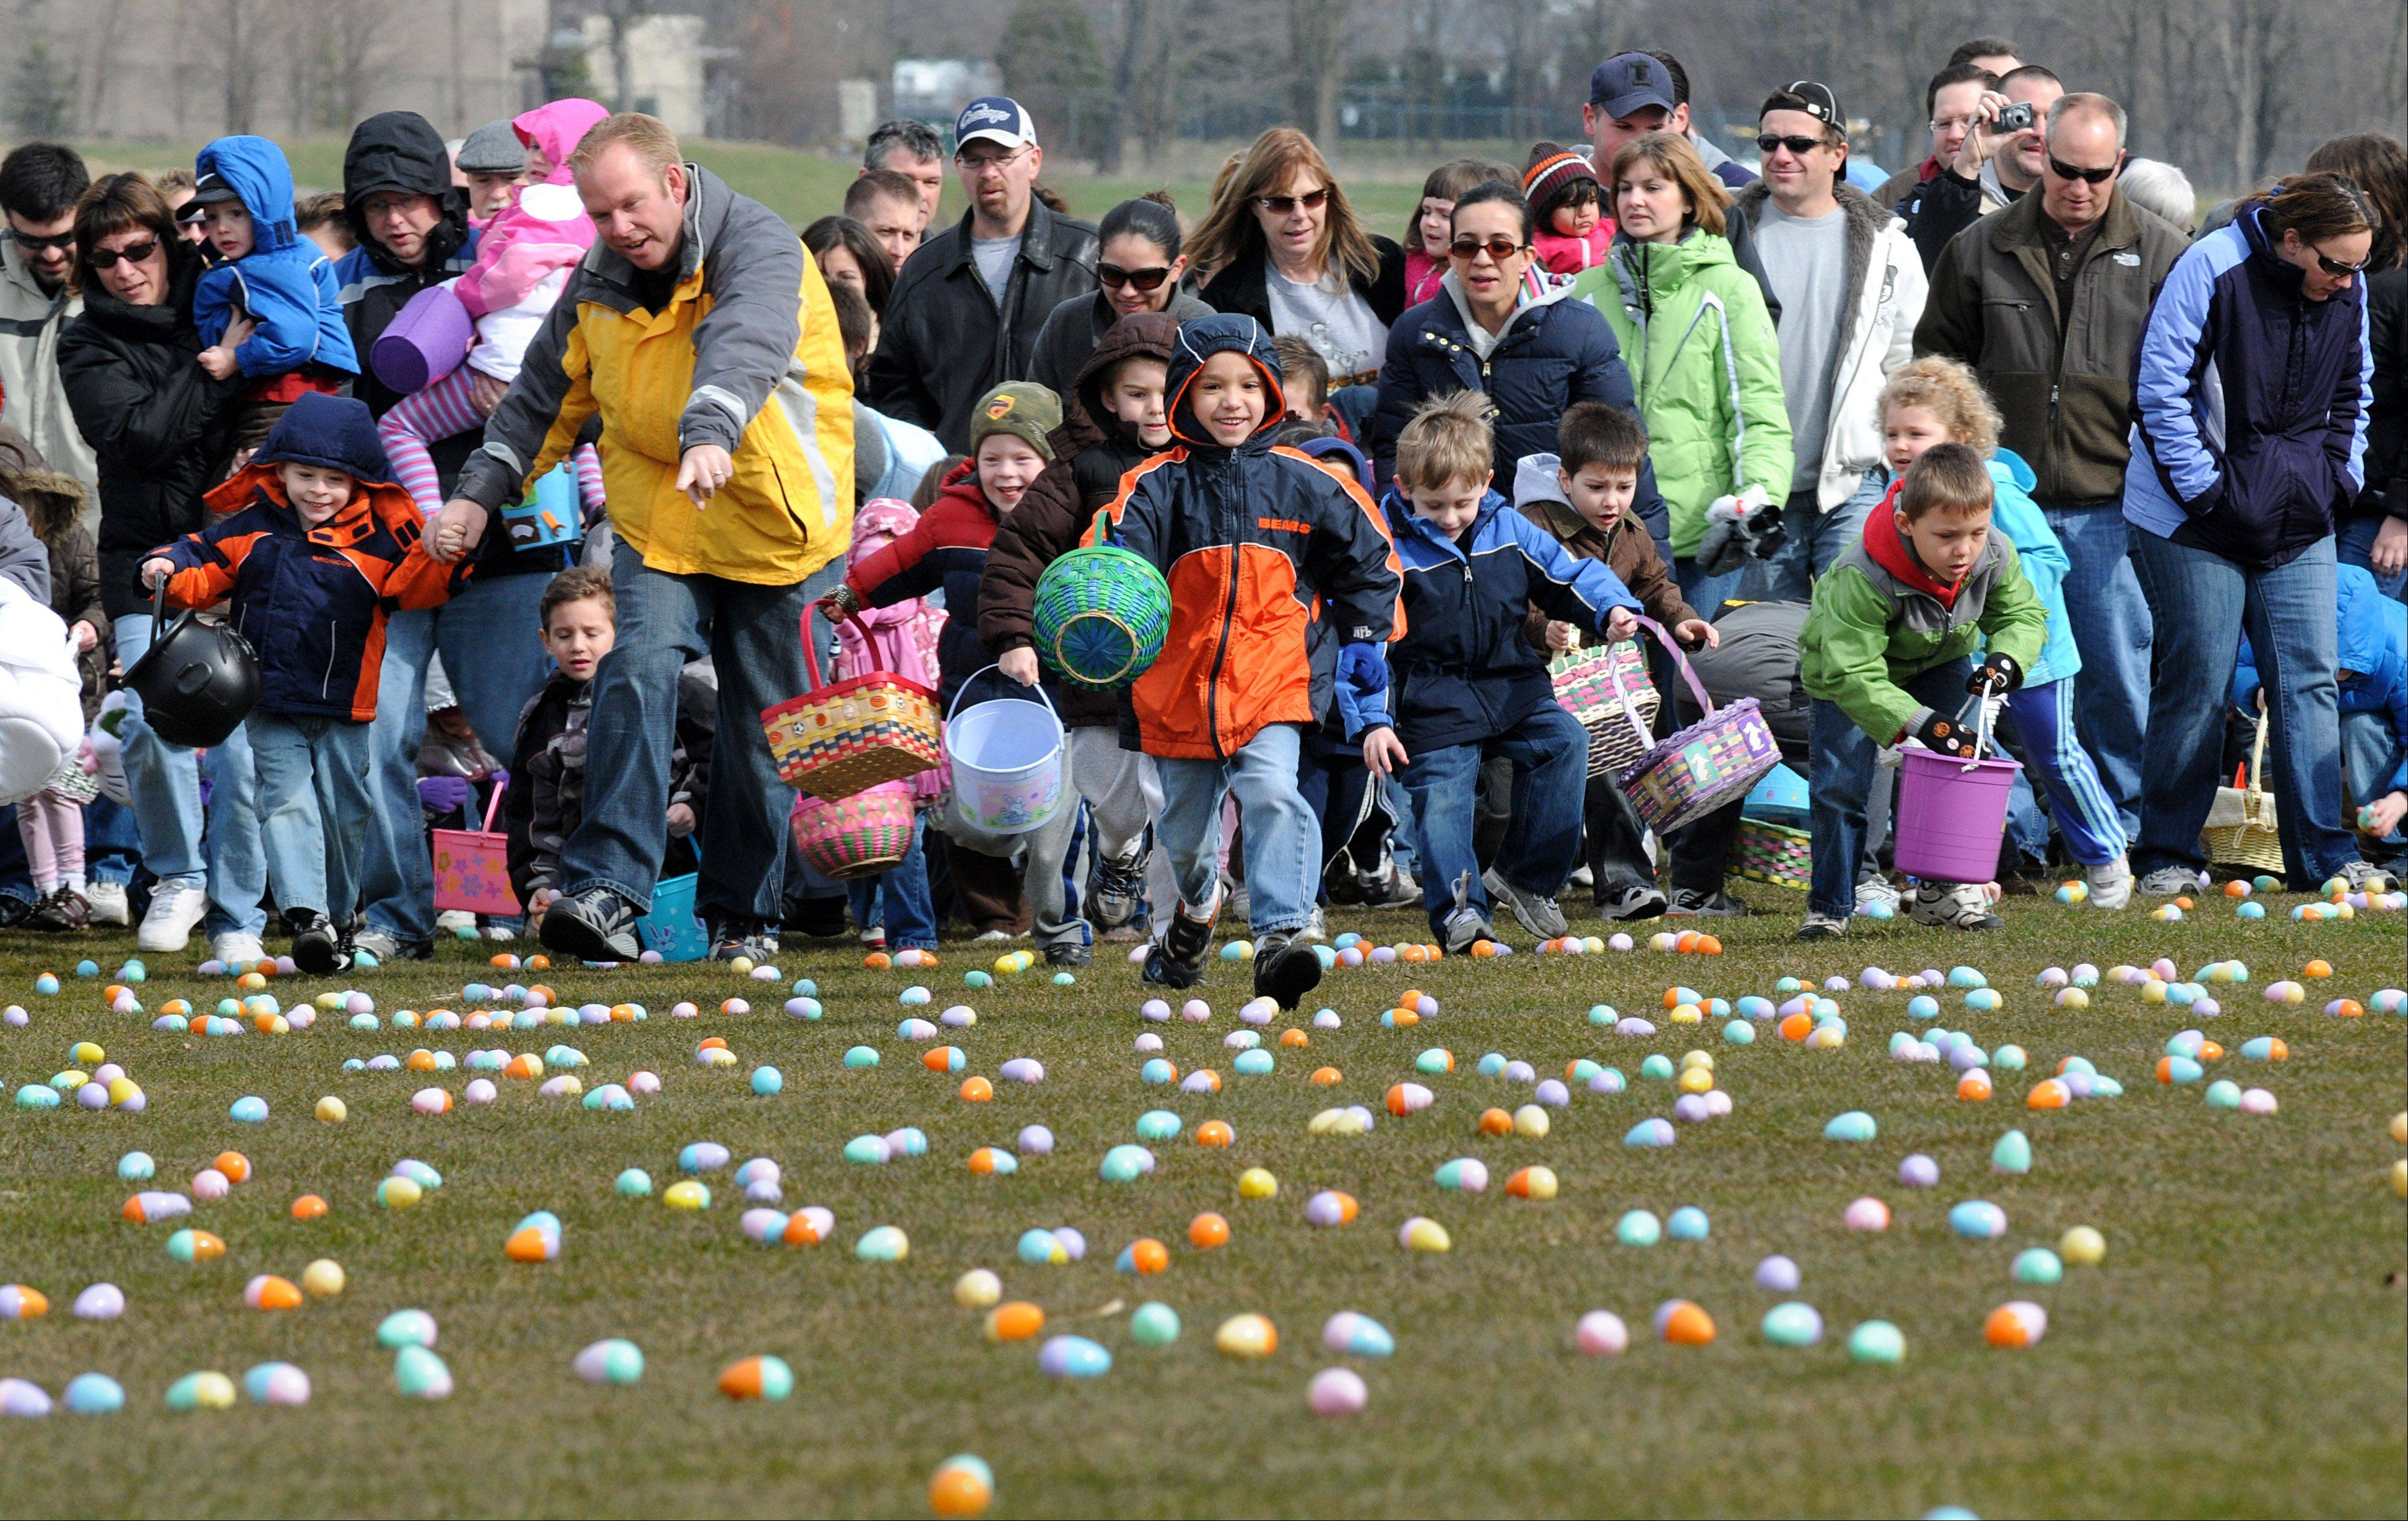 And they're off! Children sprint onto a grassy field in Algonquin to collect 14,000 plastic eggs in a matter of minutes.